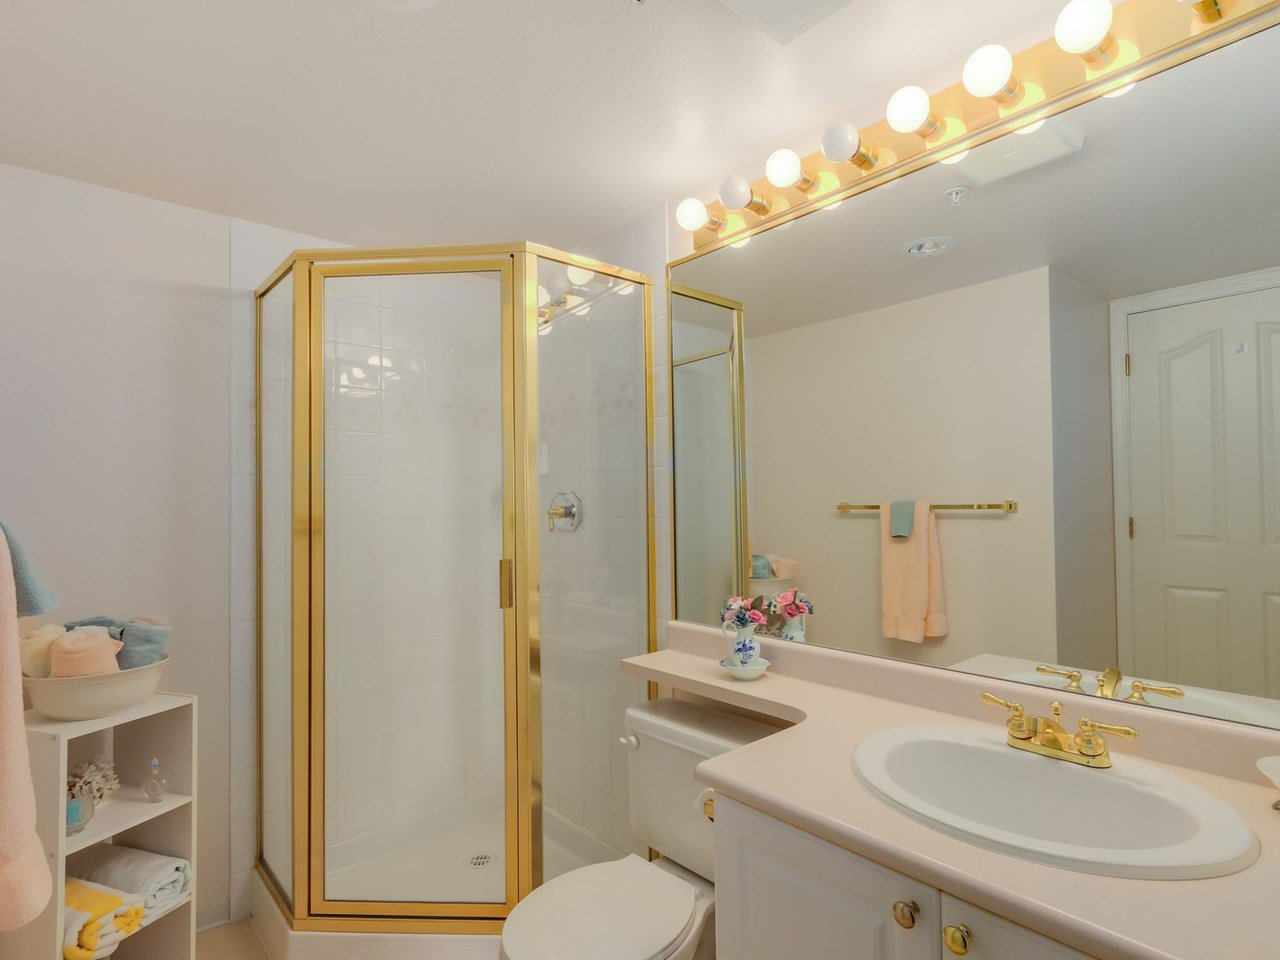 Photo 15: Photos: 403 728 PRINCESS Street in New Westminster: Uptown NW Condo for sale : MLS®# R2061685